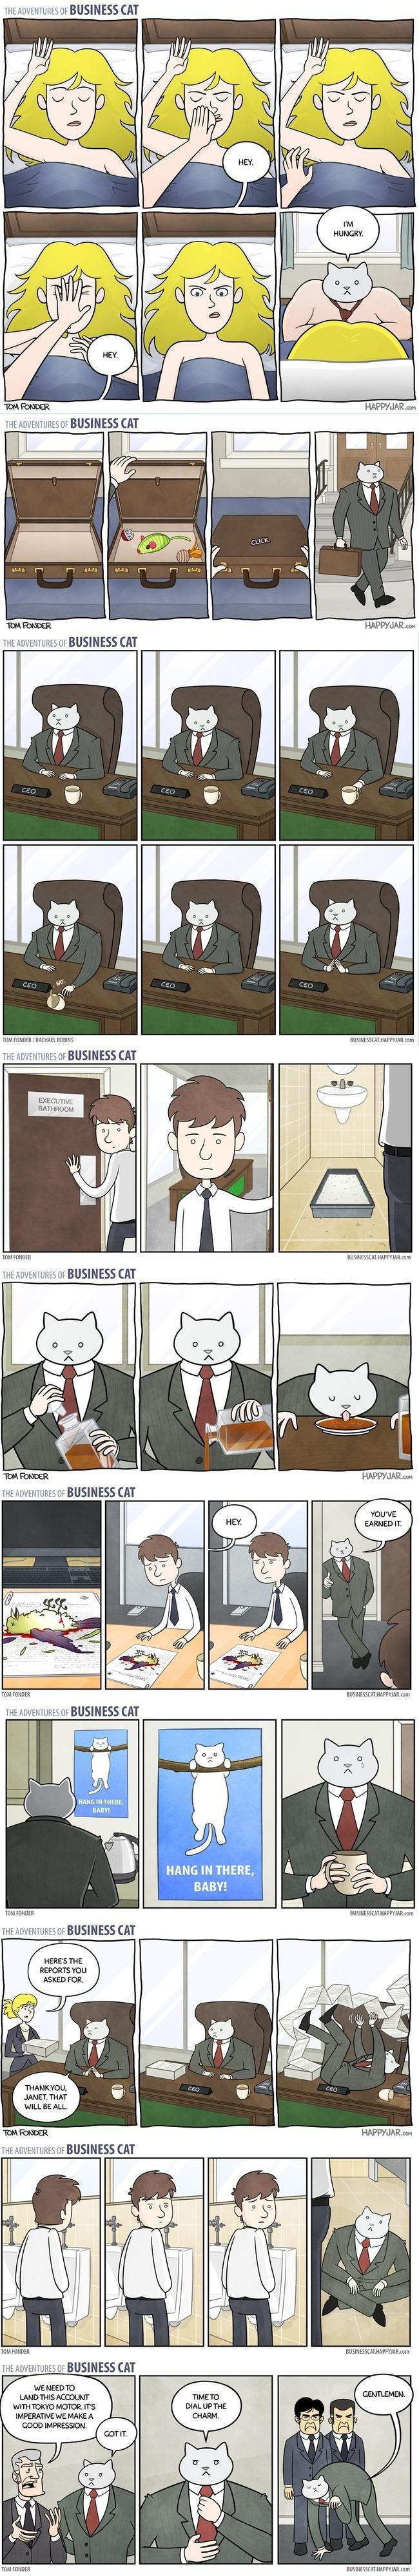 ideas about Business Cat on Pinterest   Report to  Funniest     Pinterest       ideas about Business Cat on Pinterest   Report to  Funniest gifs and Lol